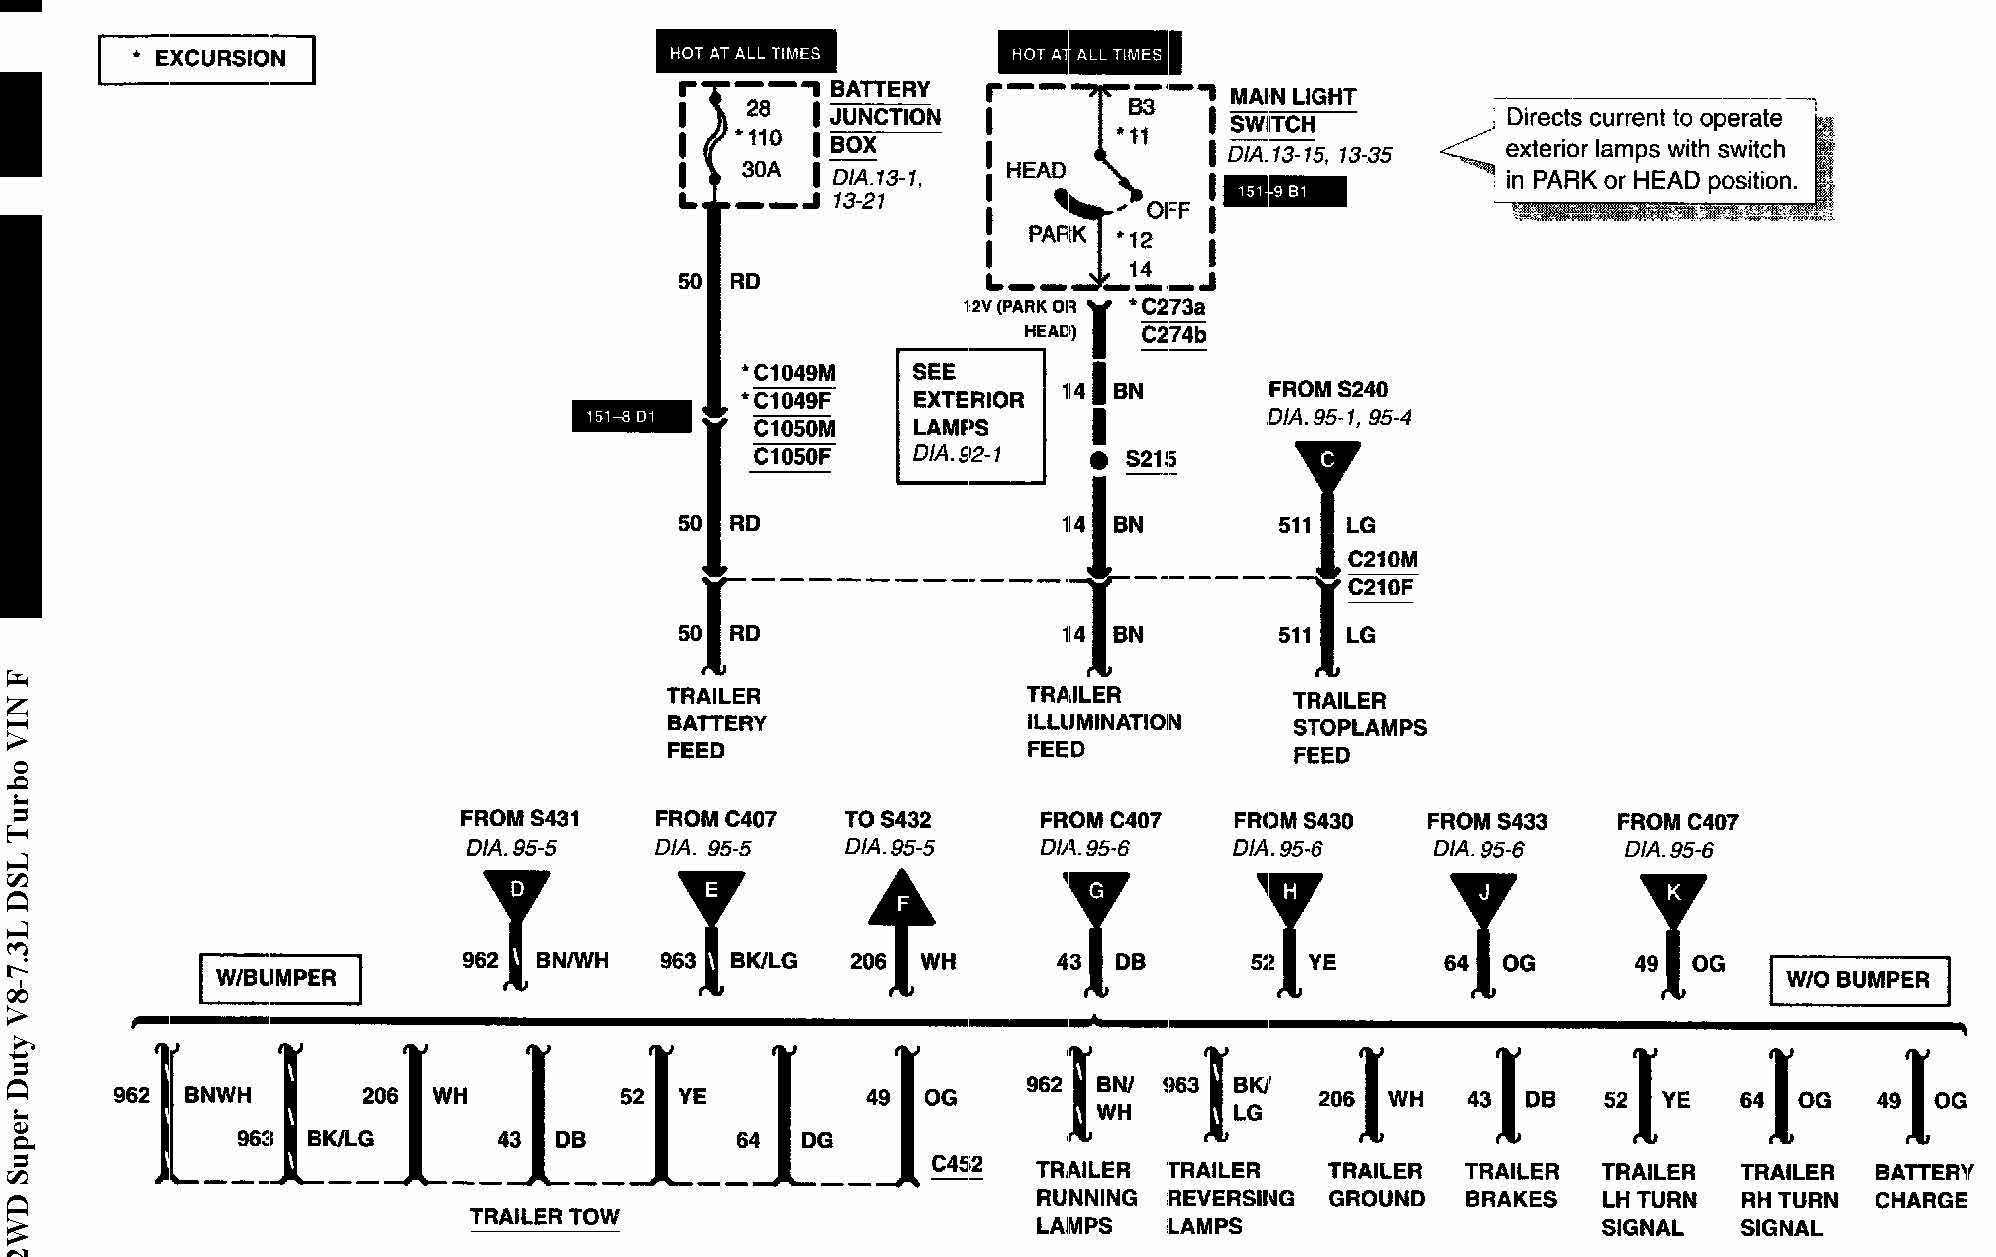 Knapheide Power Lock Wiring Diagram Johnson Volvo Workhorse Parking Light Wire Diagrams Fuse 16 Burns Out In 2min Ford Truck Enthusiasts